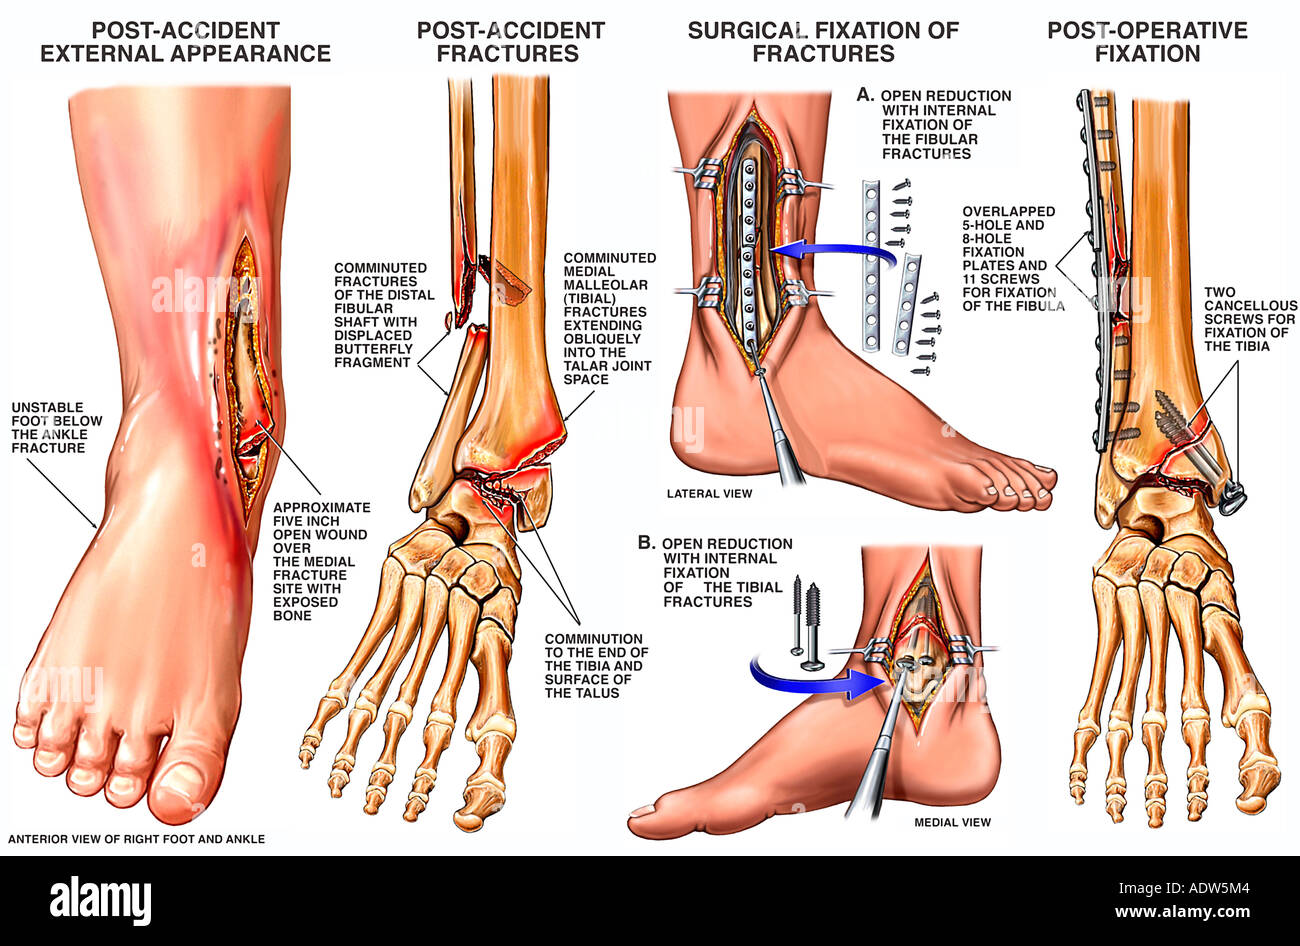 Open Fracture Dislocation of the Right Ankle - Stock Image